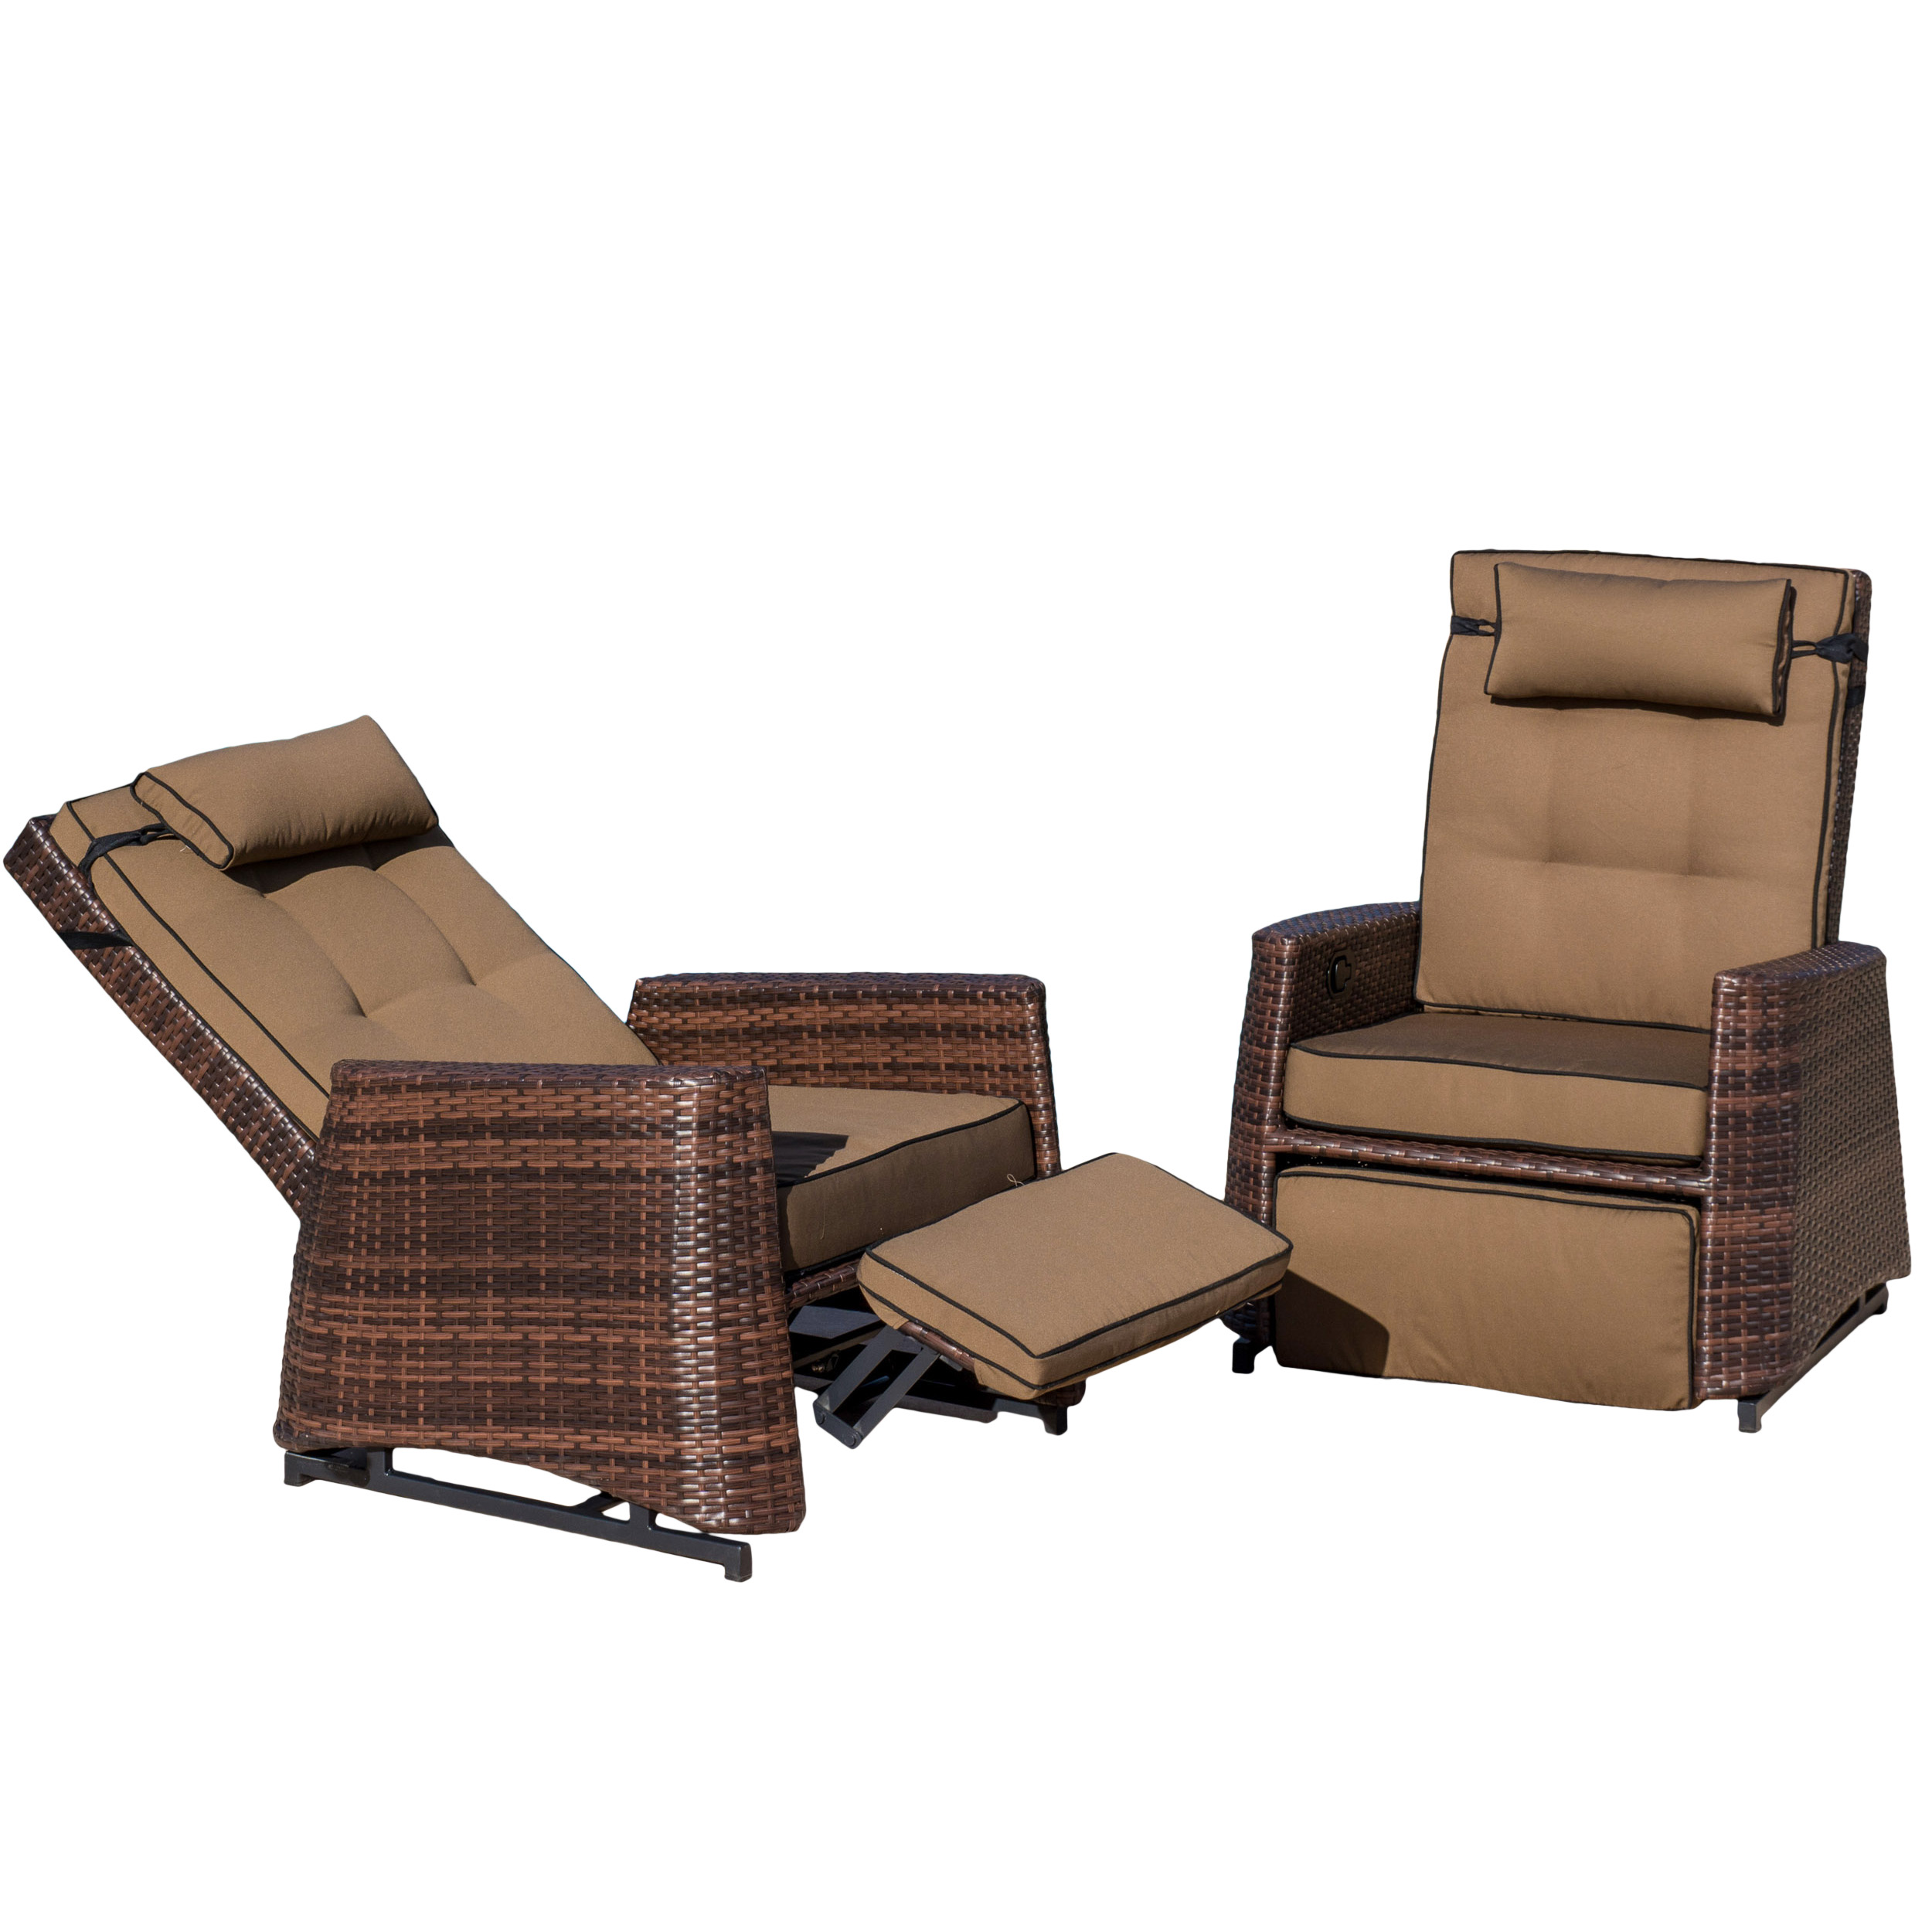 Outdoor Brown Wicker Recliners (Set of 2) by GDF Studio